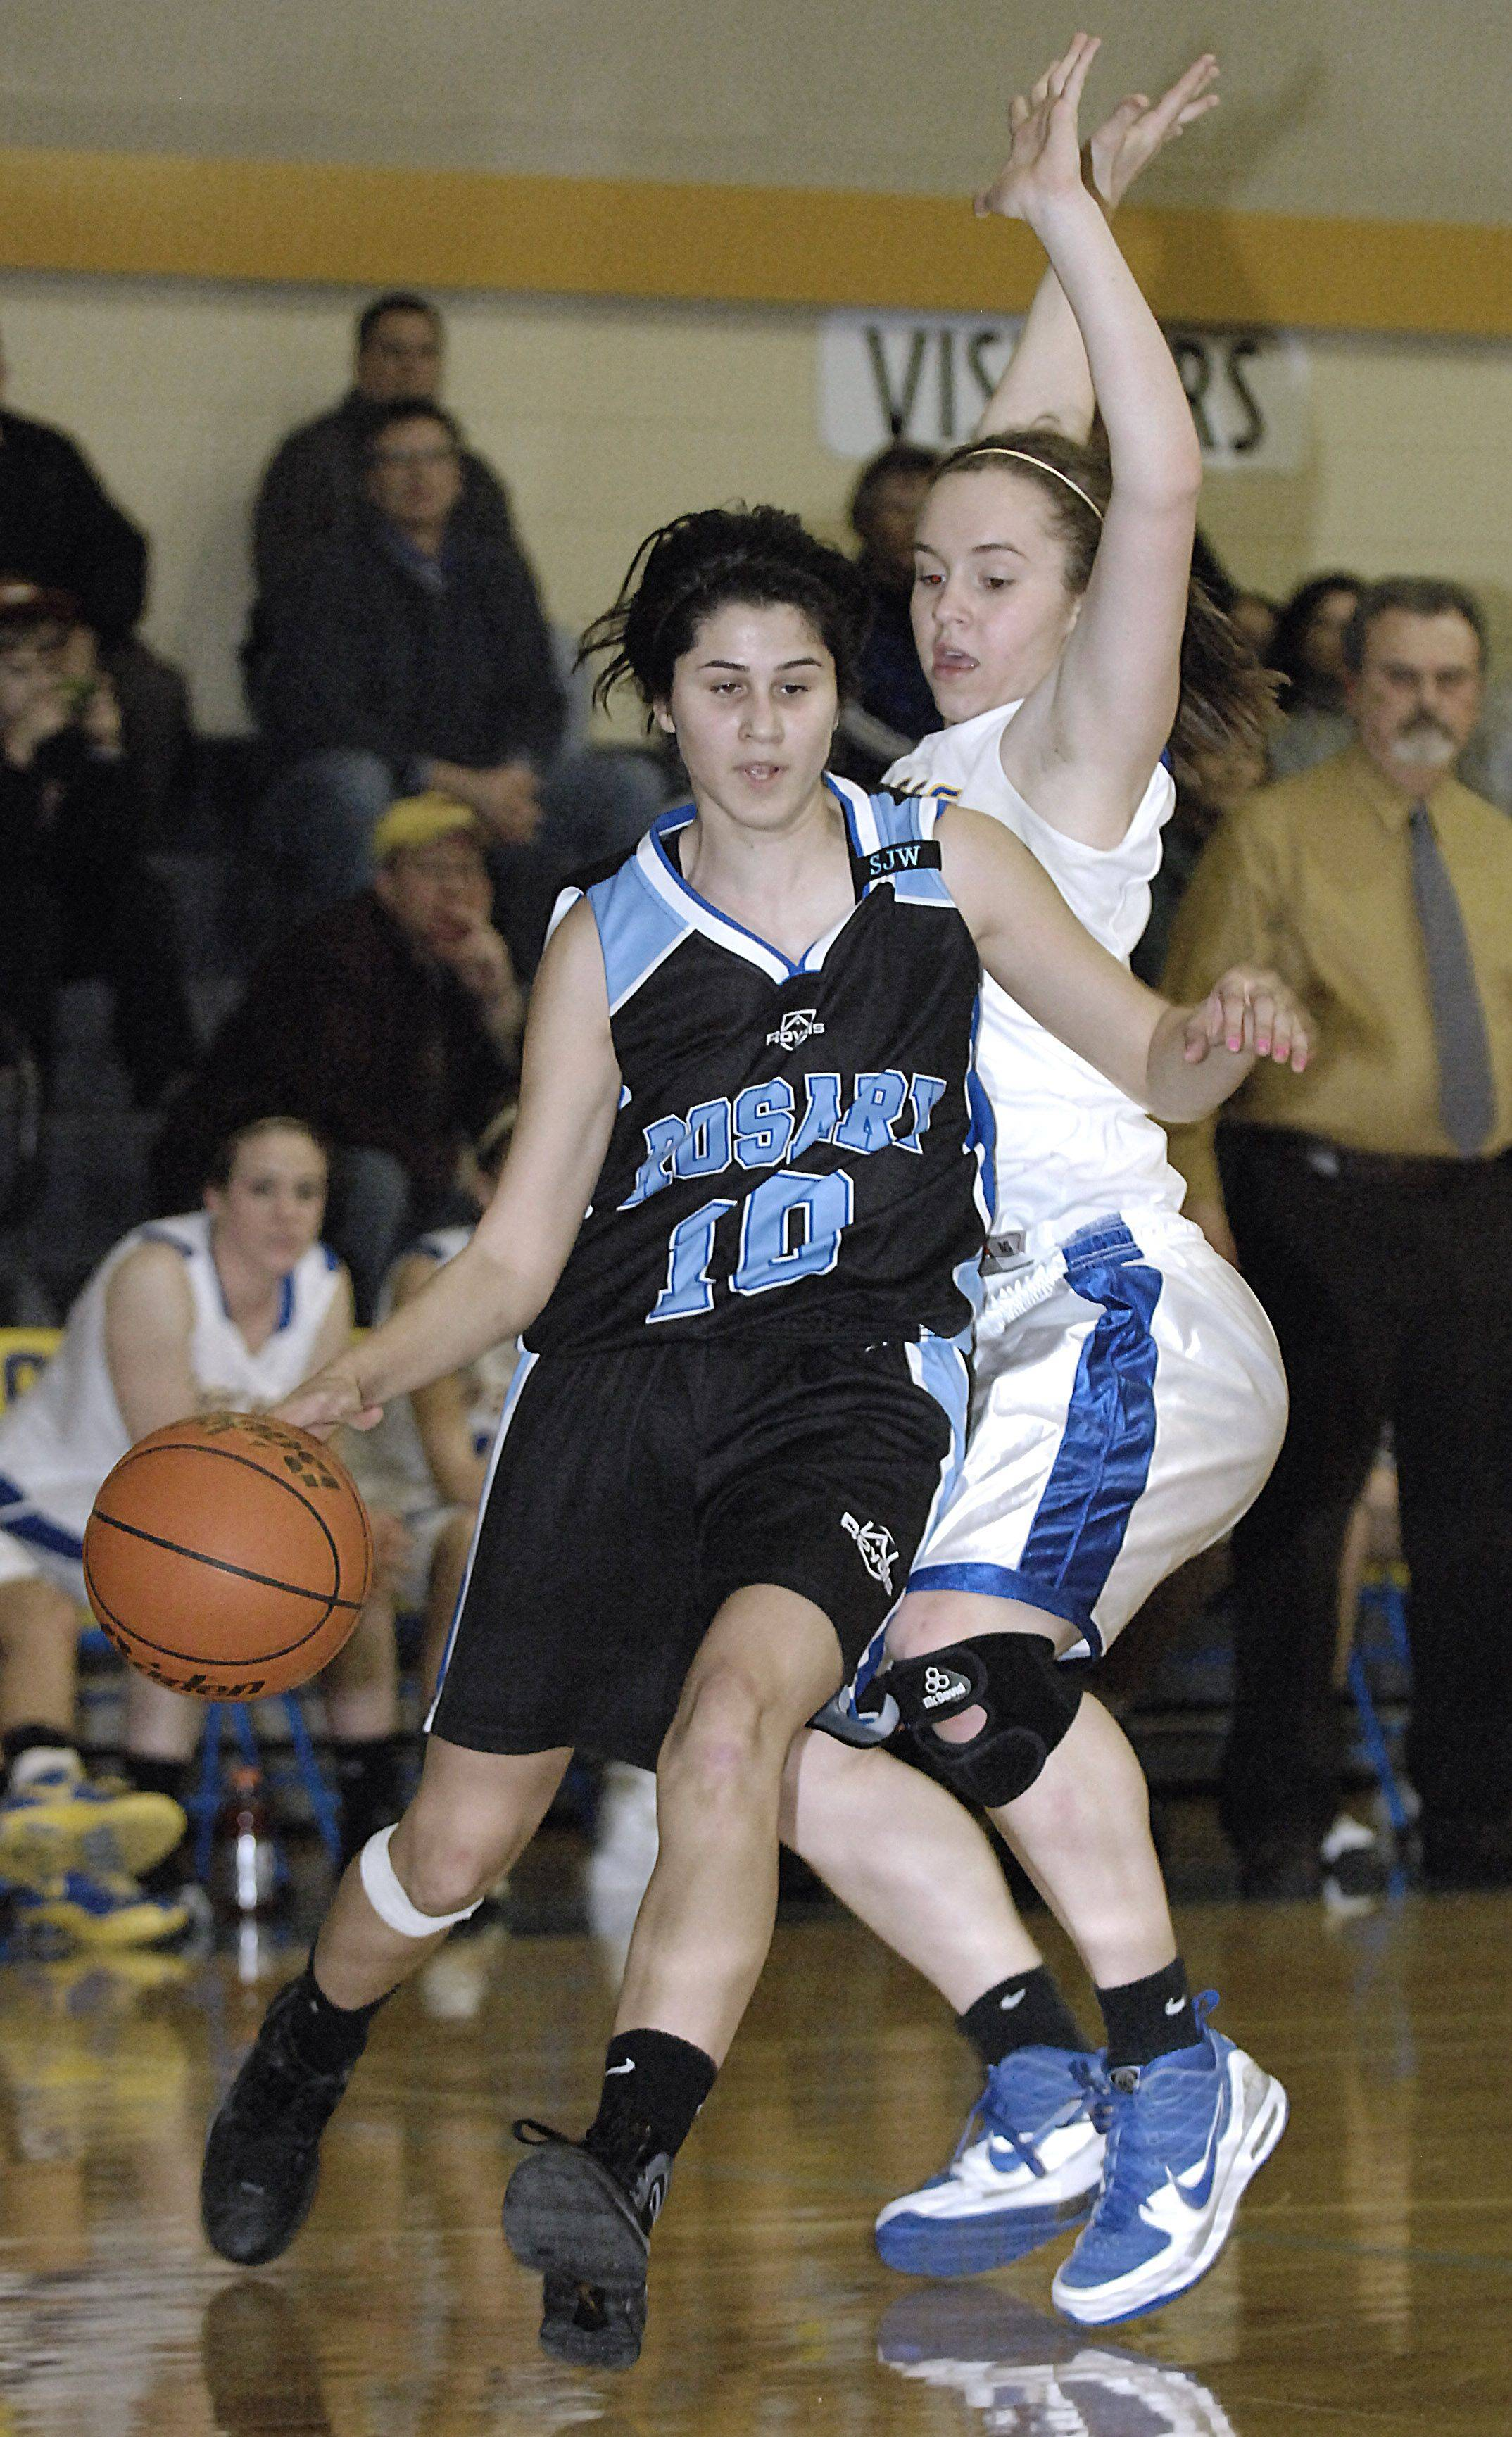 Rosary's Brenda Rocha circles past Aurora Central's Ashley Wilk in the first quarter.